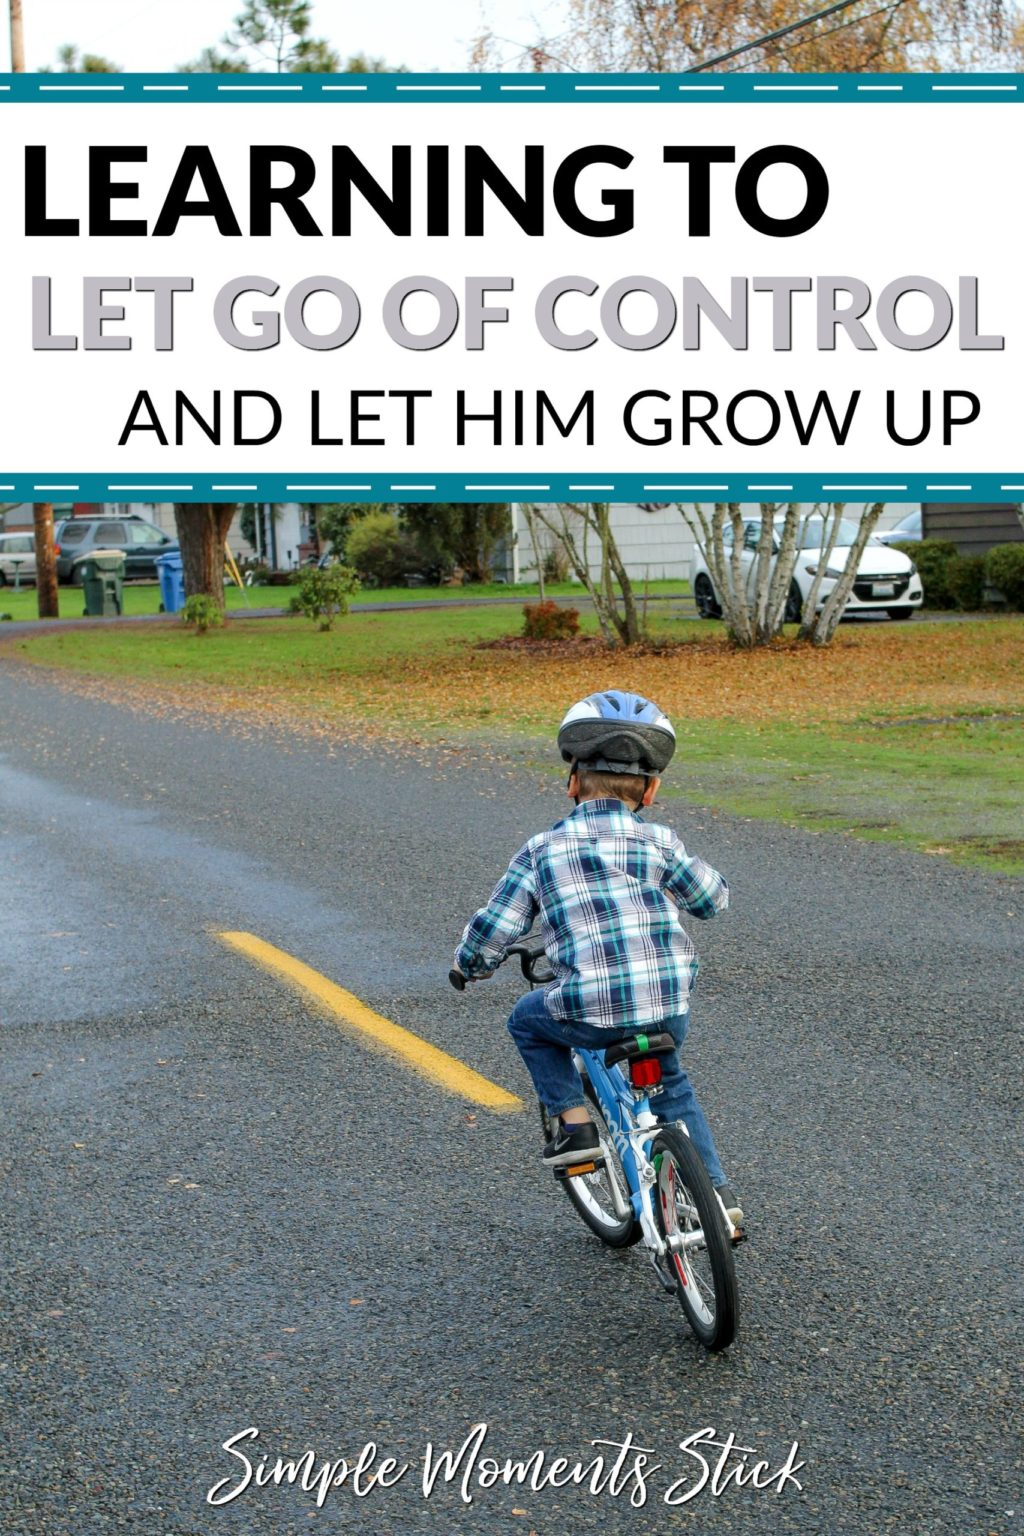 Learning to let go of control. Bike riding. Learning to ride a bike